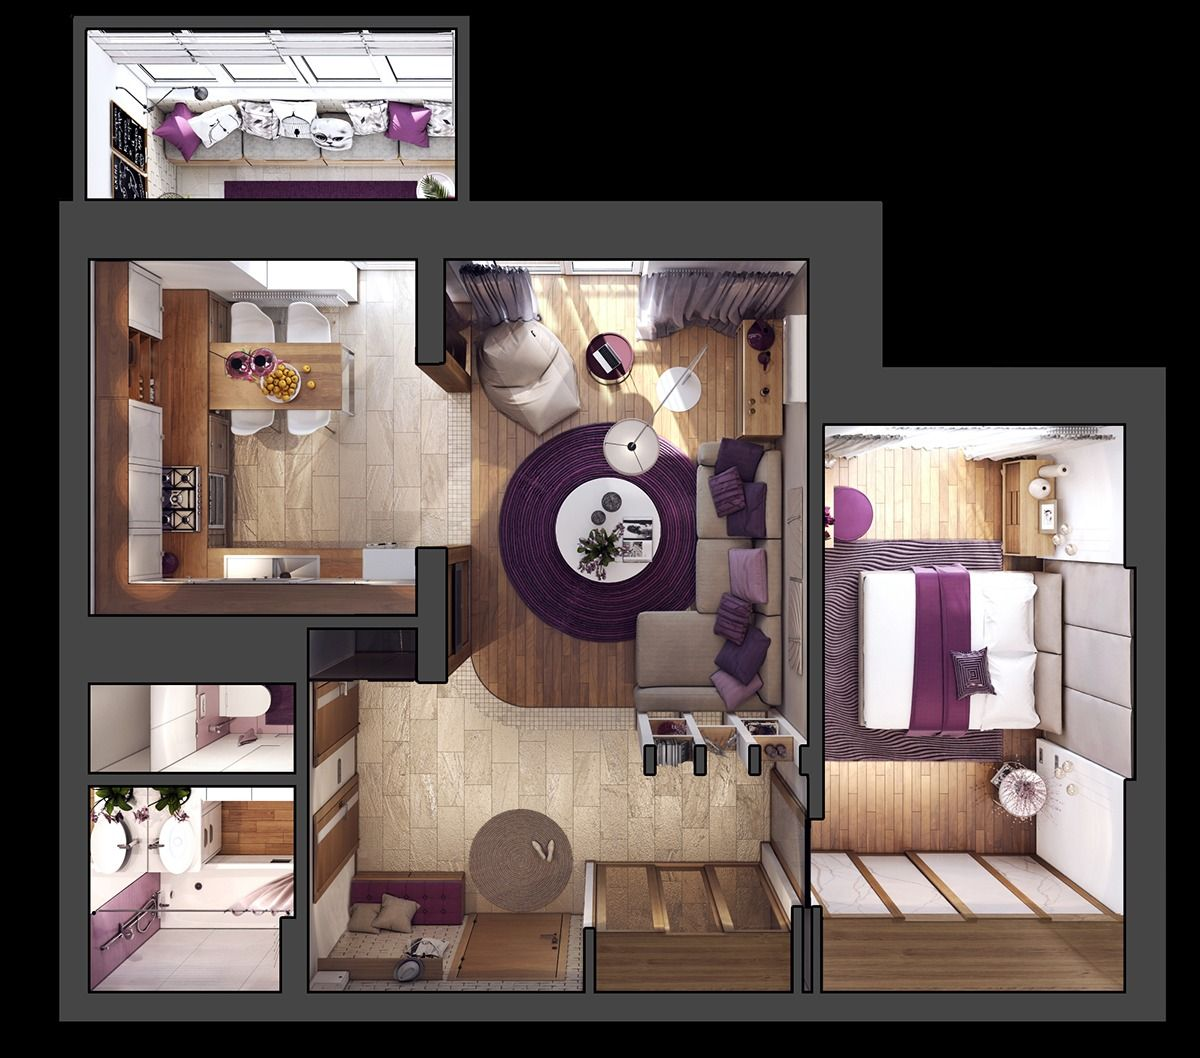 3 One Bedroom Apartments Under 750 Square Feet 70 Square Metres Includes Layouts Apartment Furniture Layout Small Room Design Home Room Design